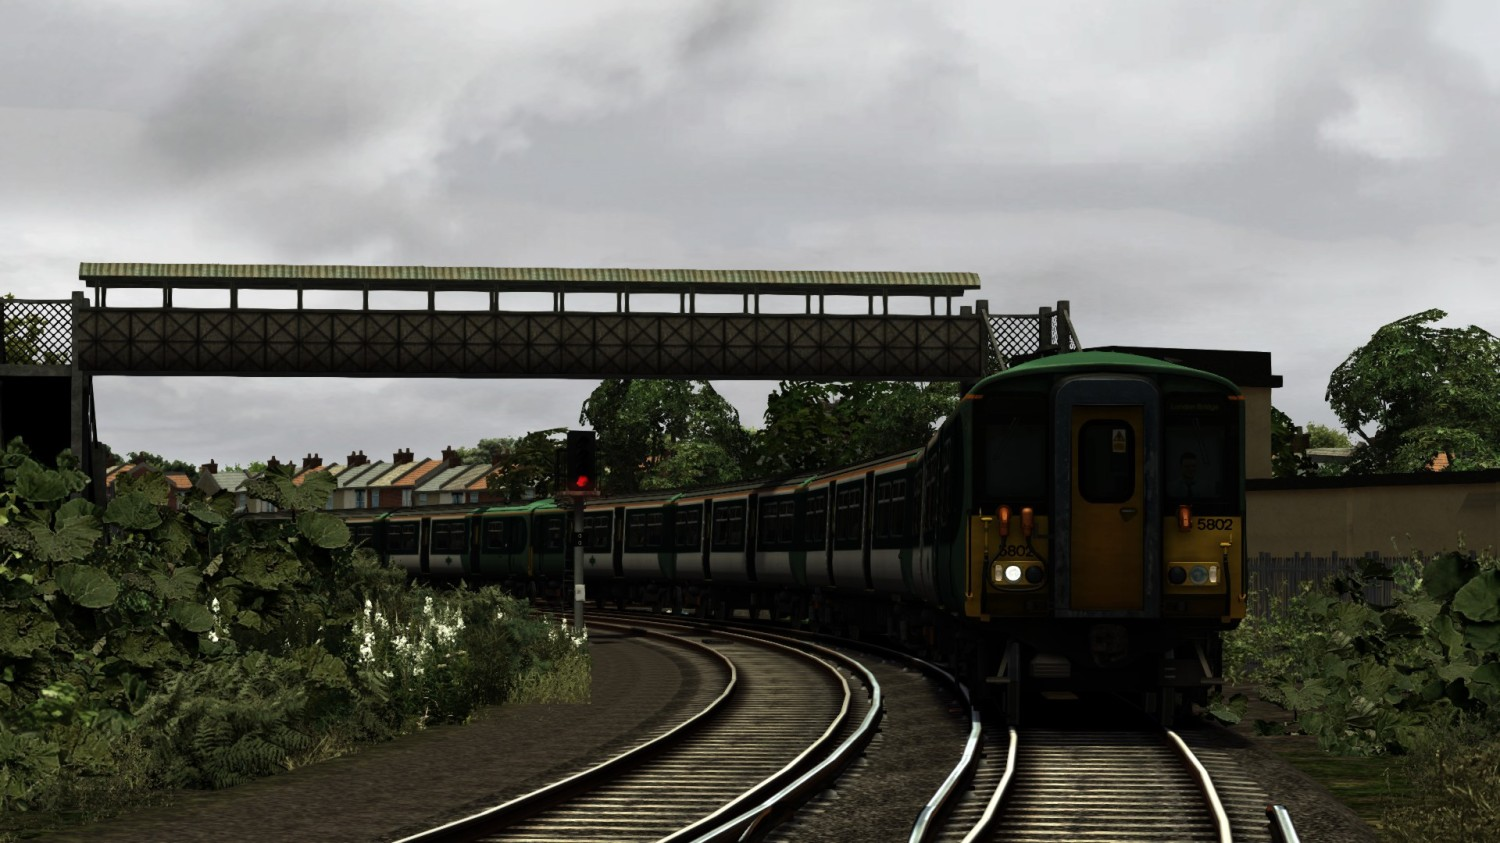 Image showing a screenshot taken on a scenario from the free South London Network scenario pack from DPSimulation